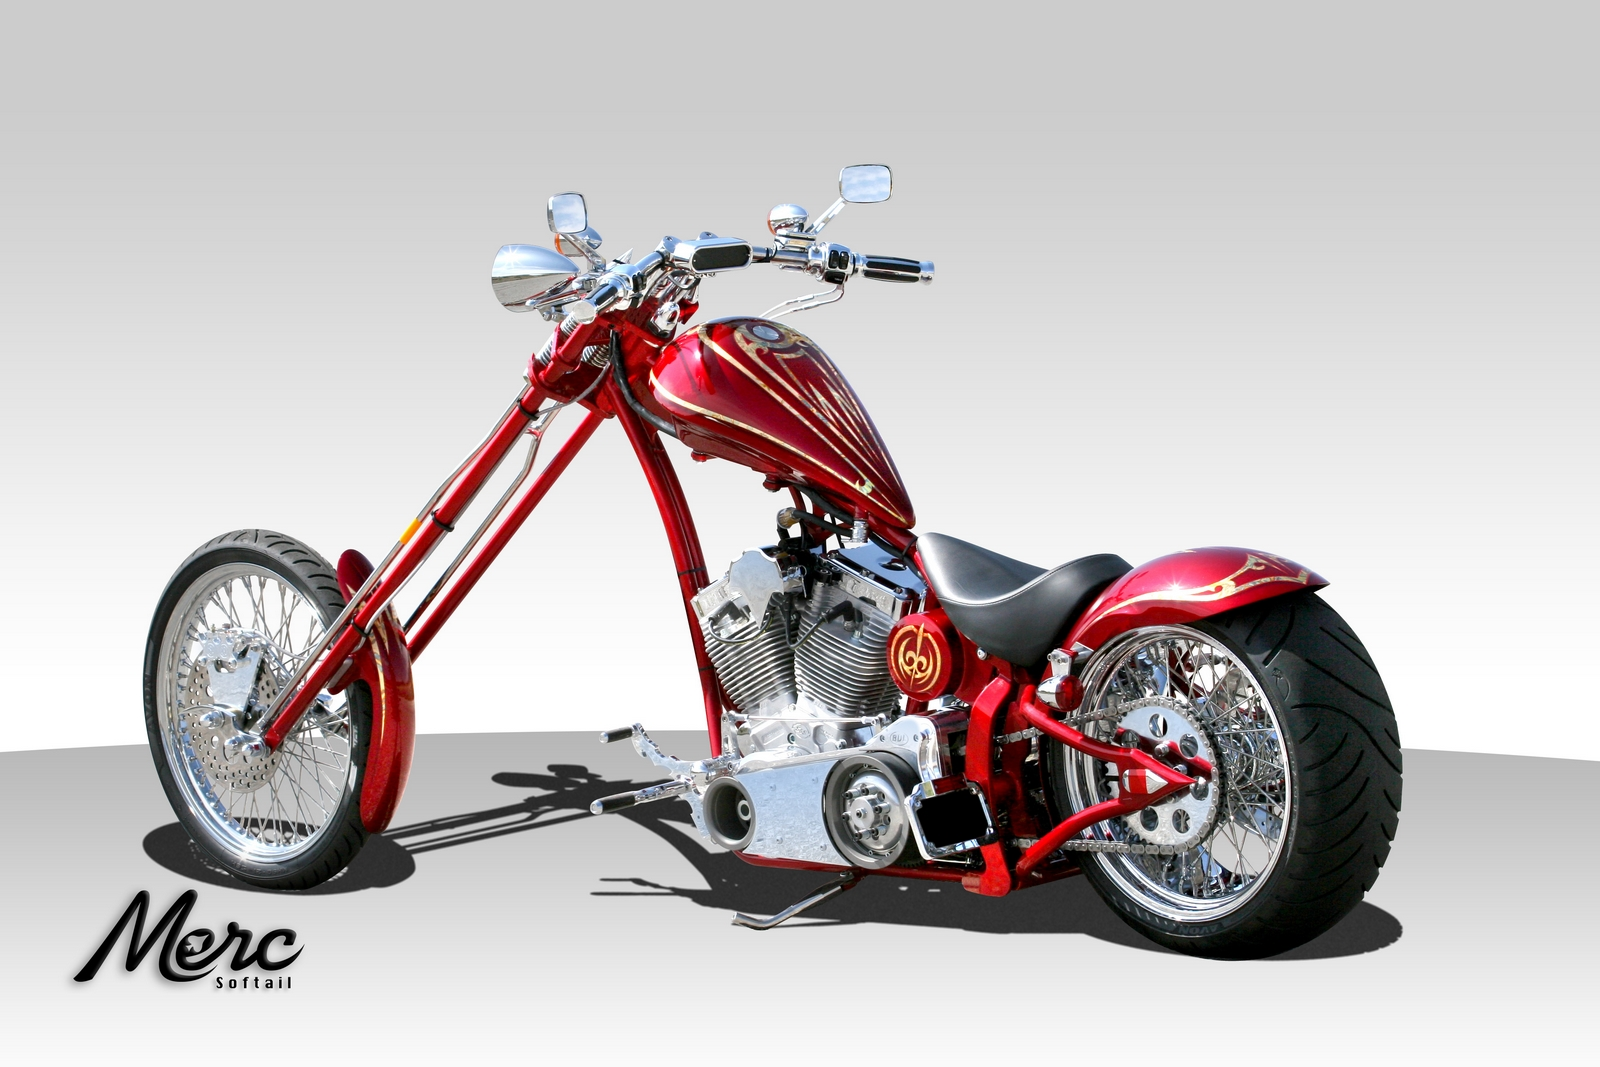 Big Bear Choppers Merc Softail 100 Smooth Carb images #63771